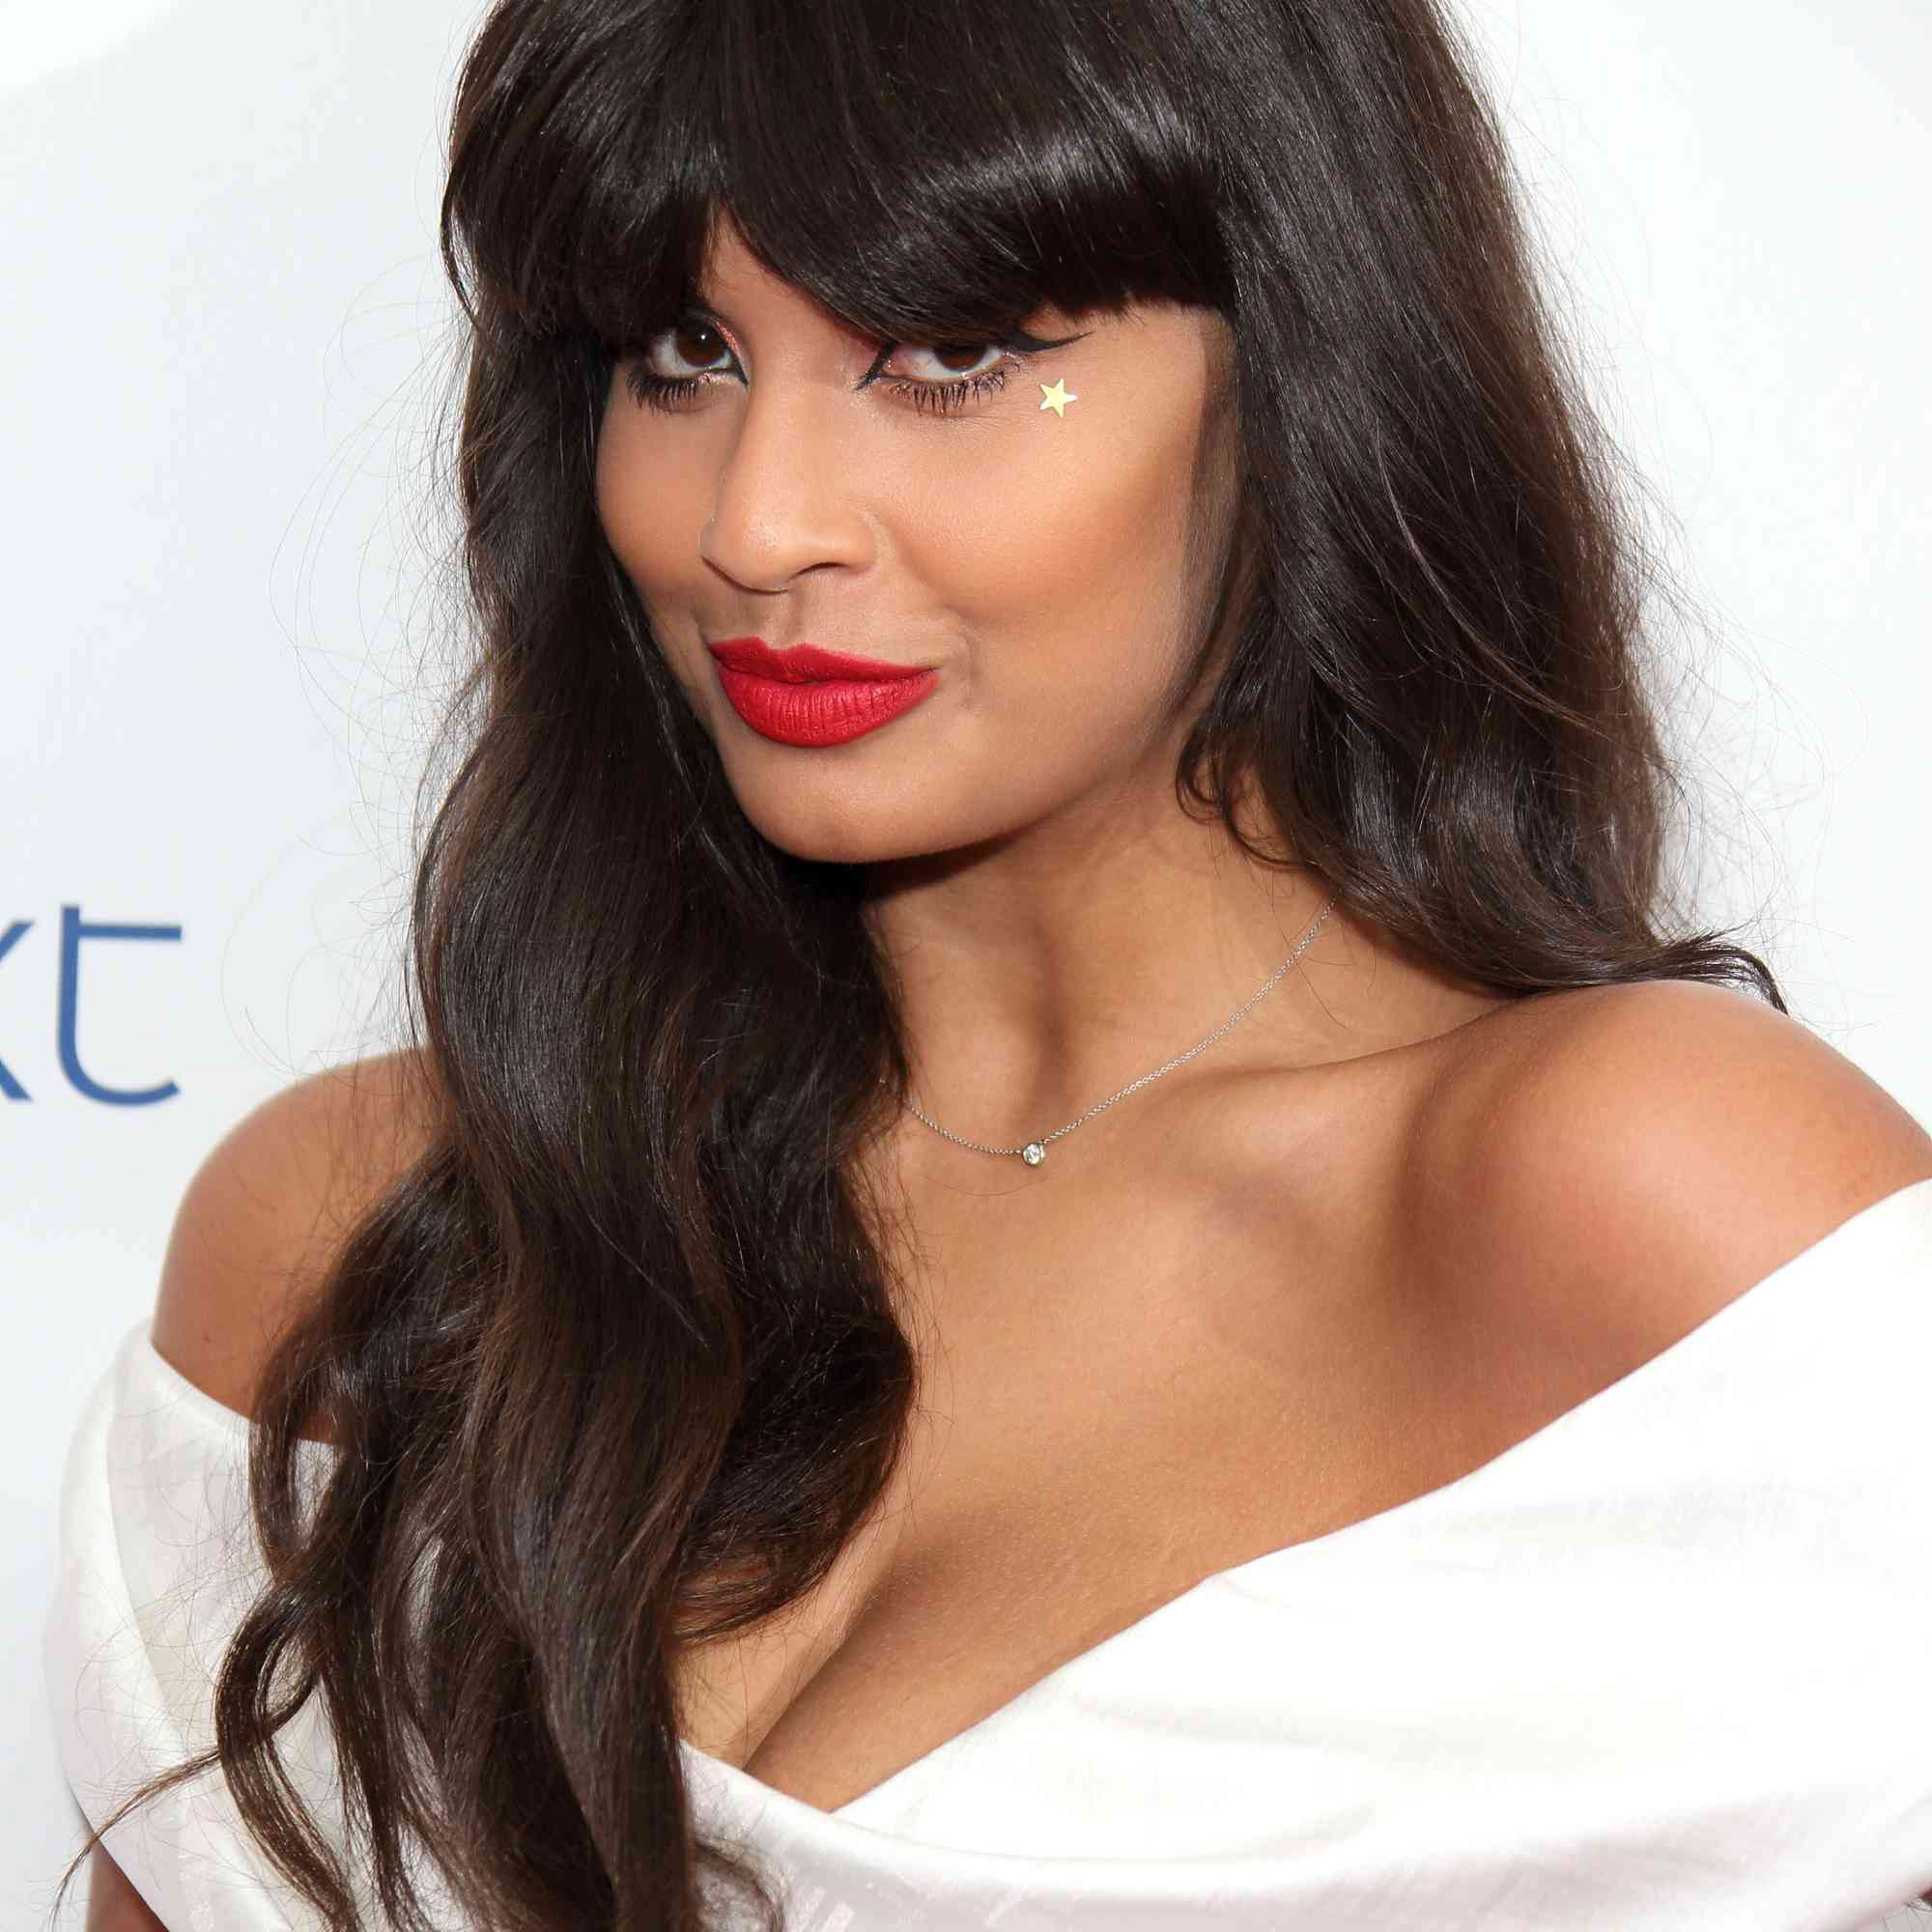 Jameela Jamil at the Glamour Women Of The Year Awards - Arrivals